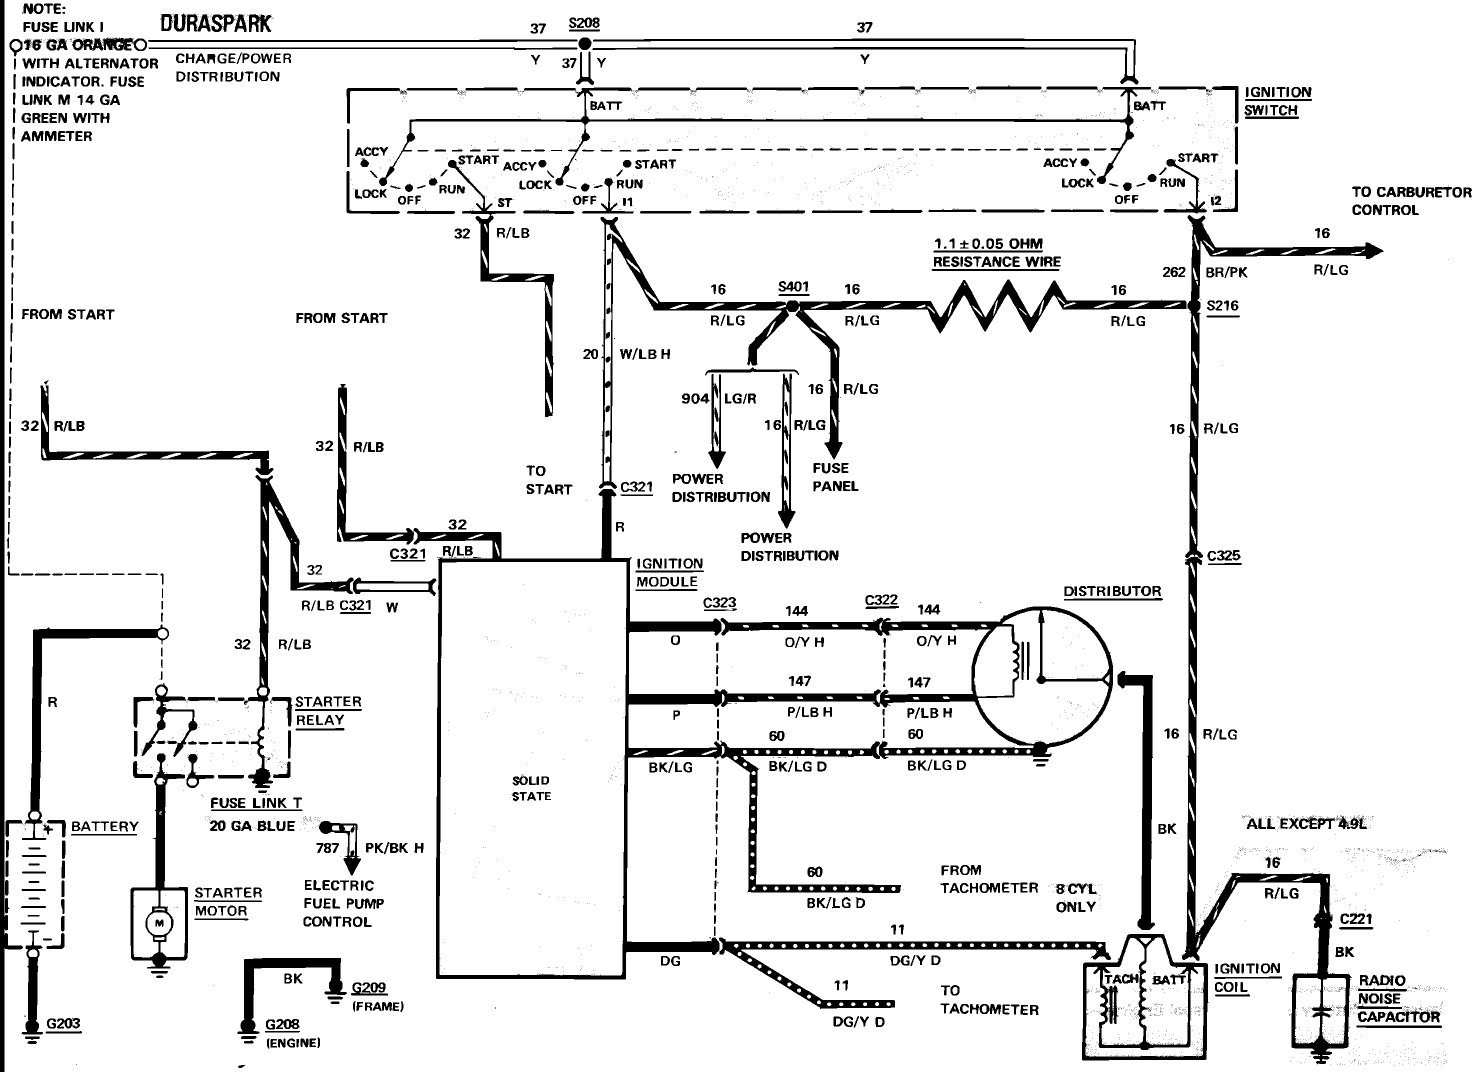 1977 Ford F150 Alternator Wiring Diagram | Wiring Diagram  Ford Pickup Wiring Diagram on 94 ford f-150 wiring diagram, 94 ford pickup parts, 71 chevy pickup wiring diagram, 79 chevy pickup wiring diagram, 72 chevy pickup wiring diagram, 85 chevy pickup wiring diagram, 74 ford pickup wiring diagram, 94 ford bronco wiring diagram, 91 toyota pickup wiring diagram, 94 ford tempo wiring diagram, 1990 ford pickup wiring diagram, 94 nissan pickup wiring diagram,